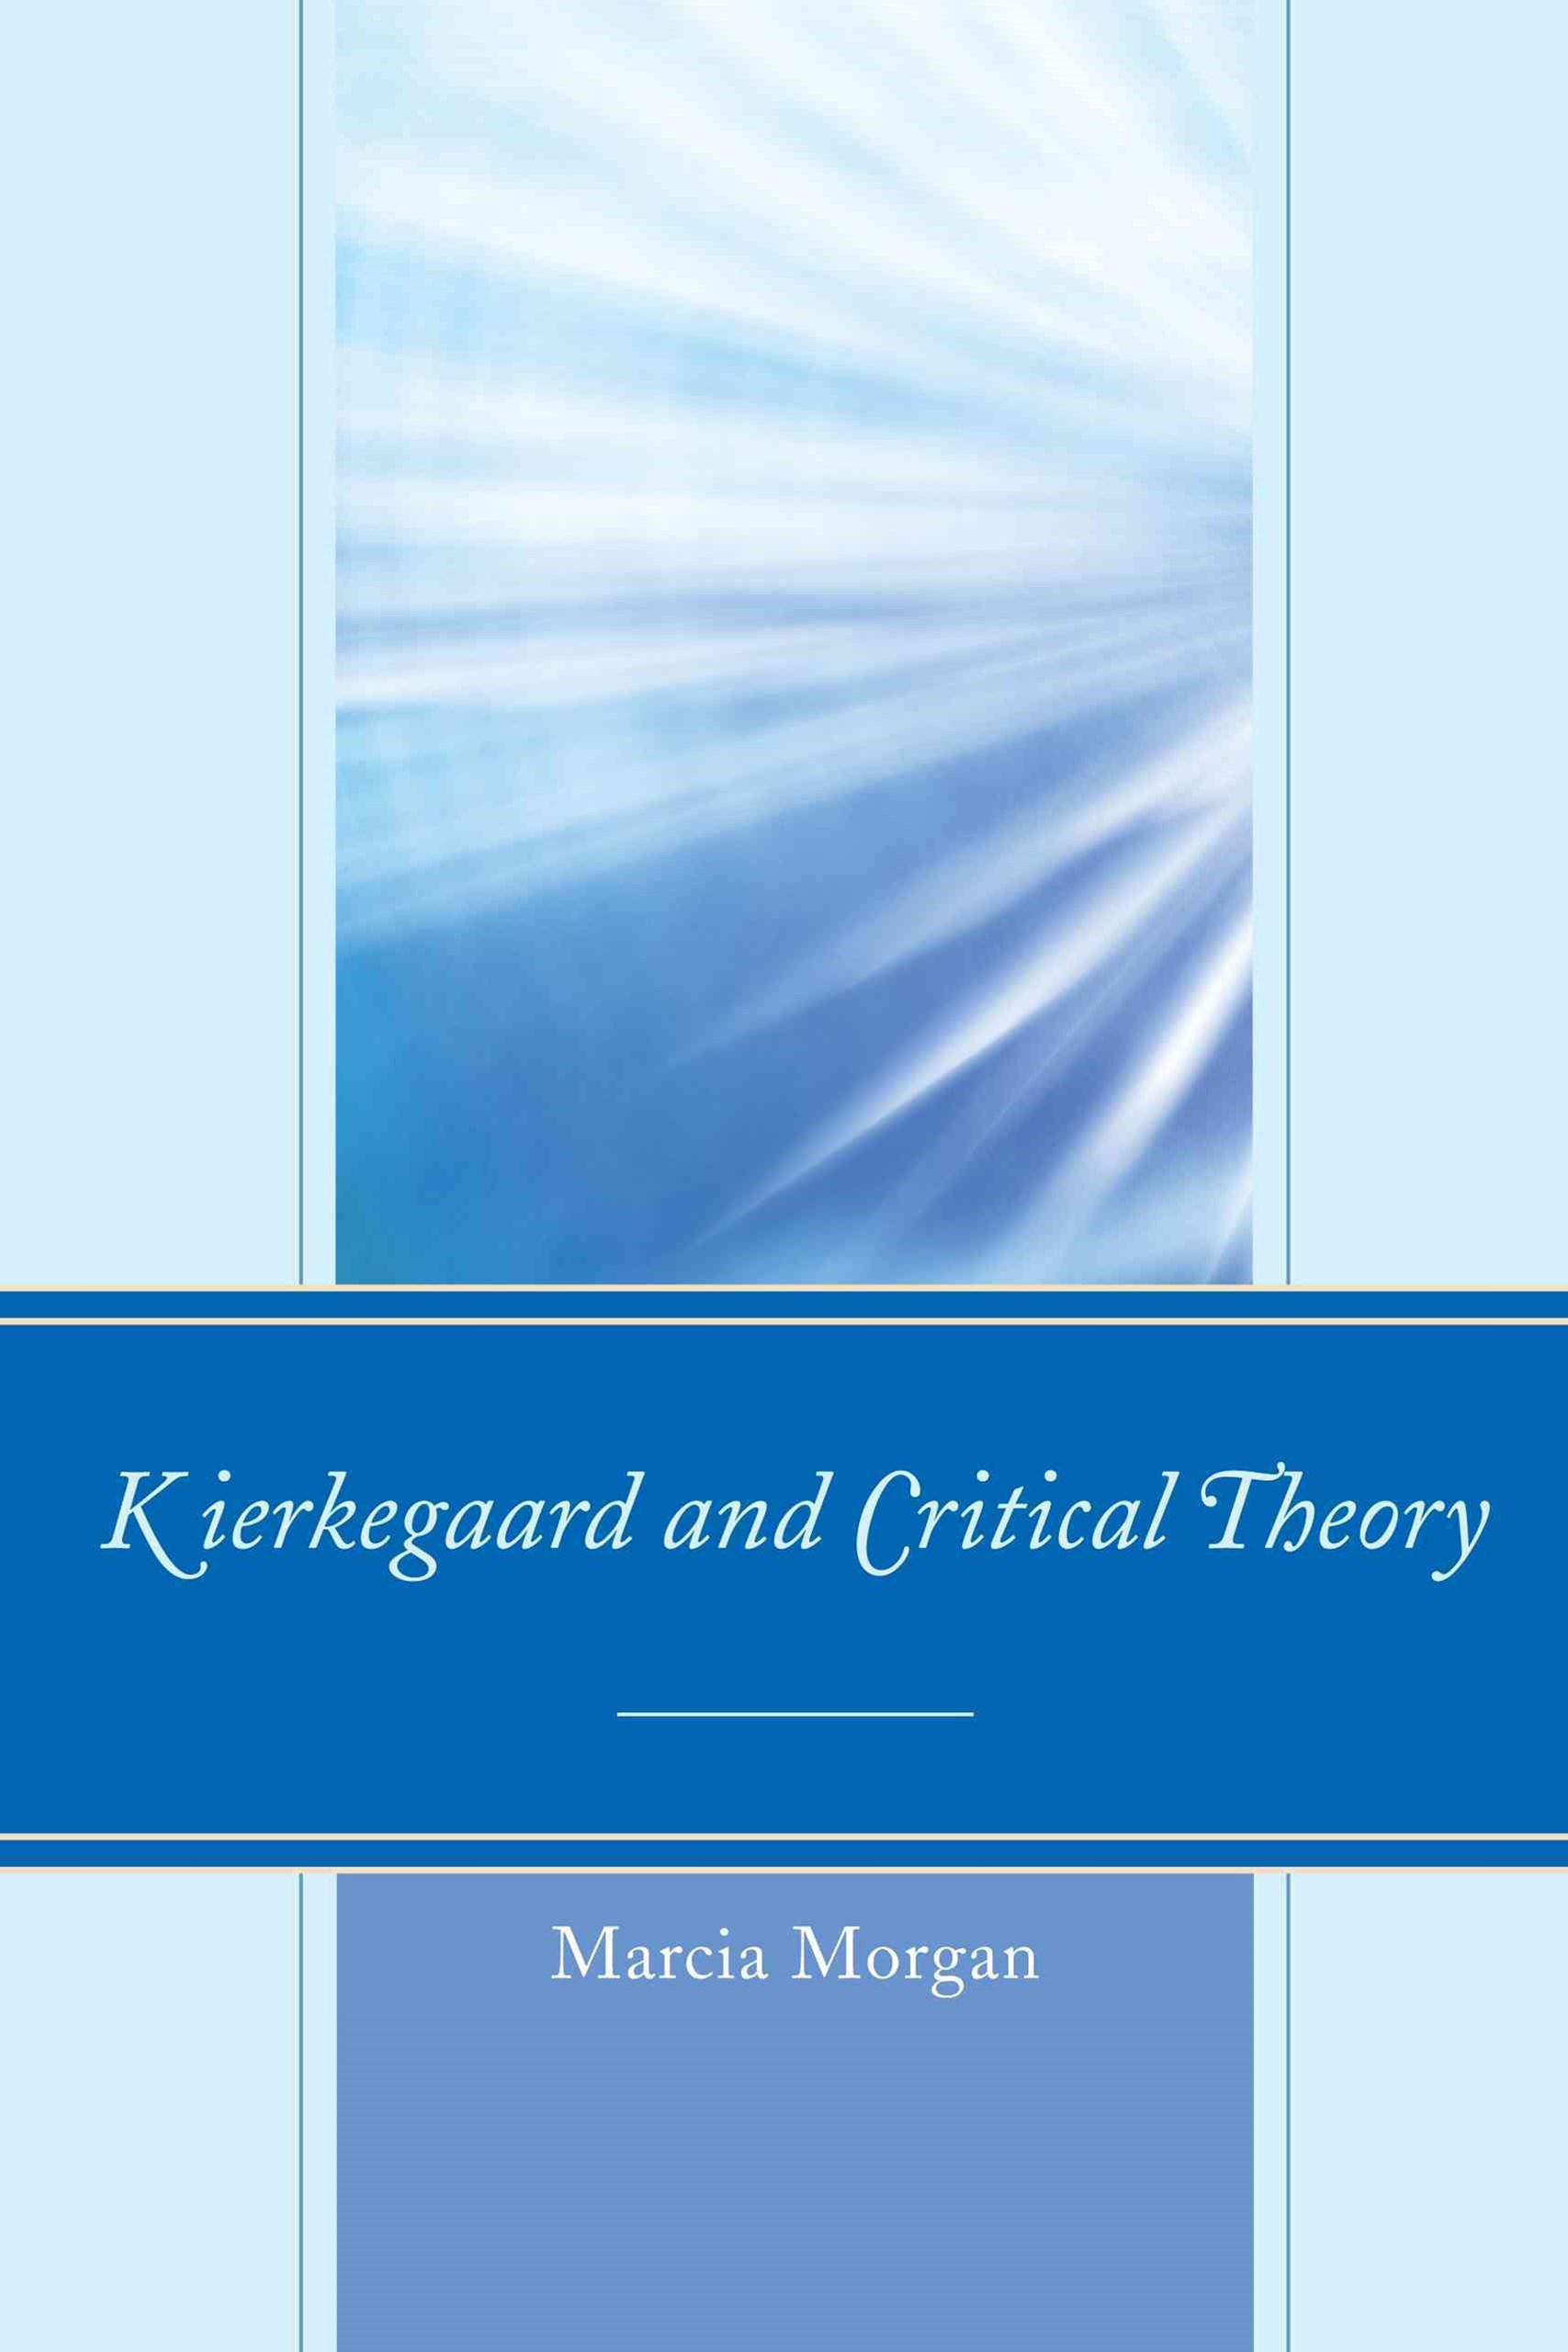 Kierkegaard and Critical Theory